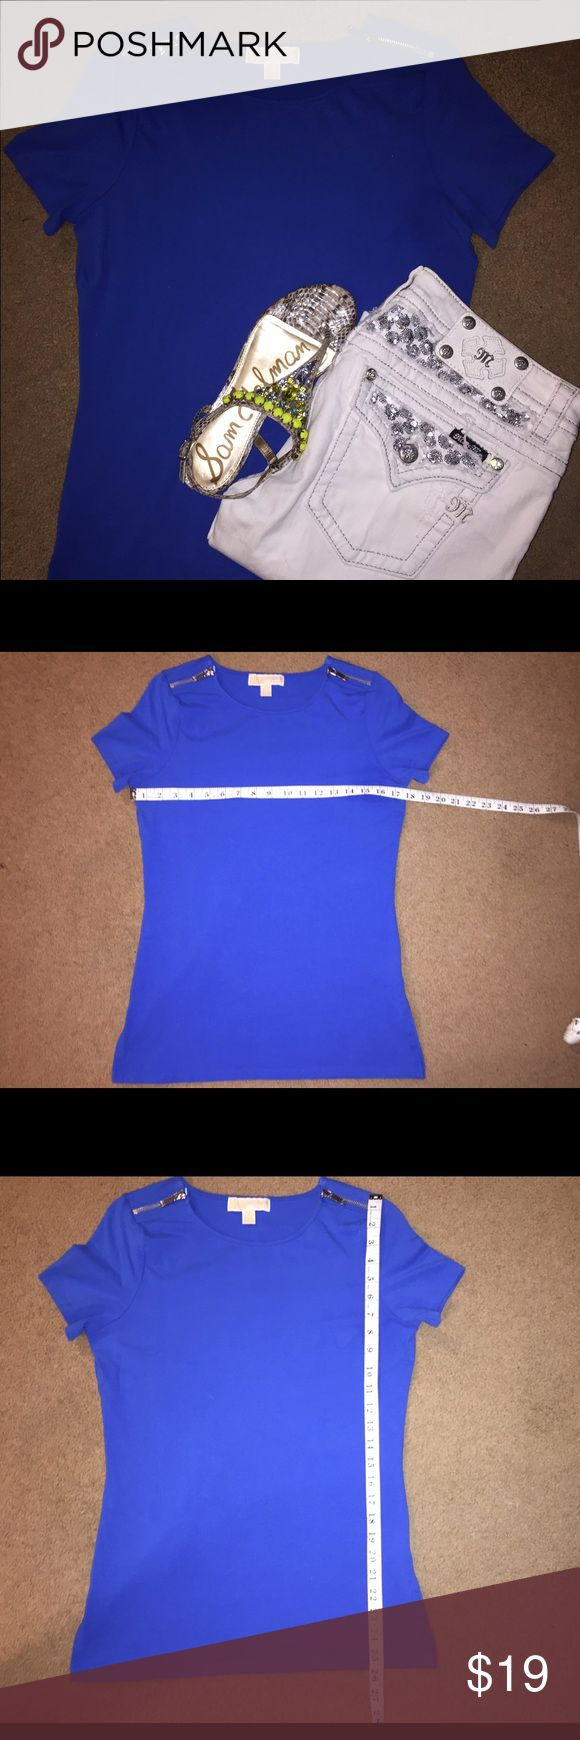 Michael Kors cobalt blue tee size M Very comfortable great fit. Both zippers on the shoulders still work and metal is silver. Slightly faded from being worn and washed. No stains, pulls,or fraying. Michael Kors Tops Tees - Short Sleeve